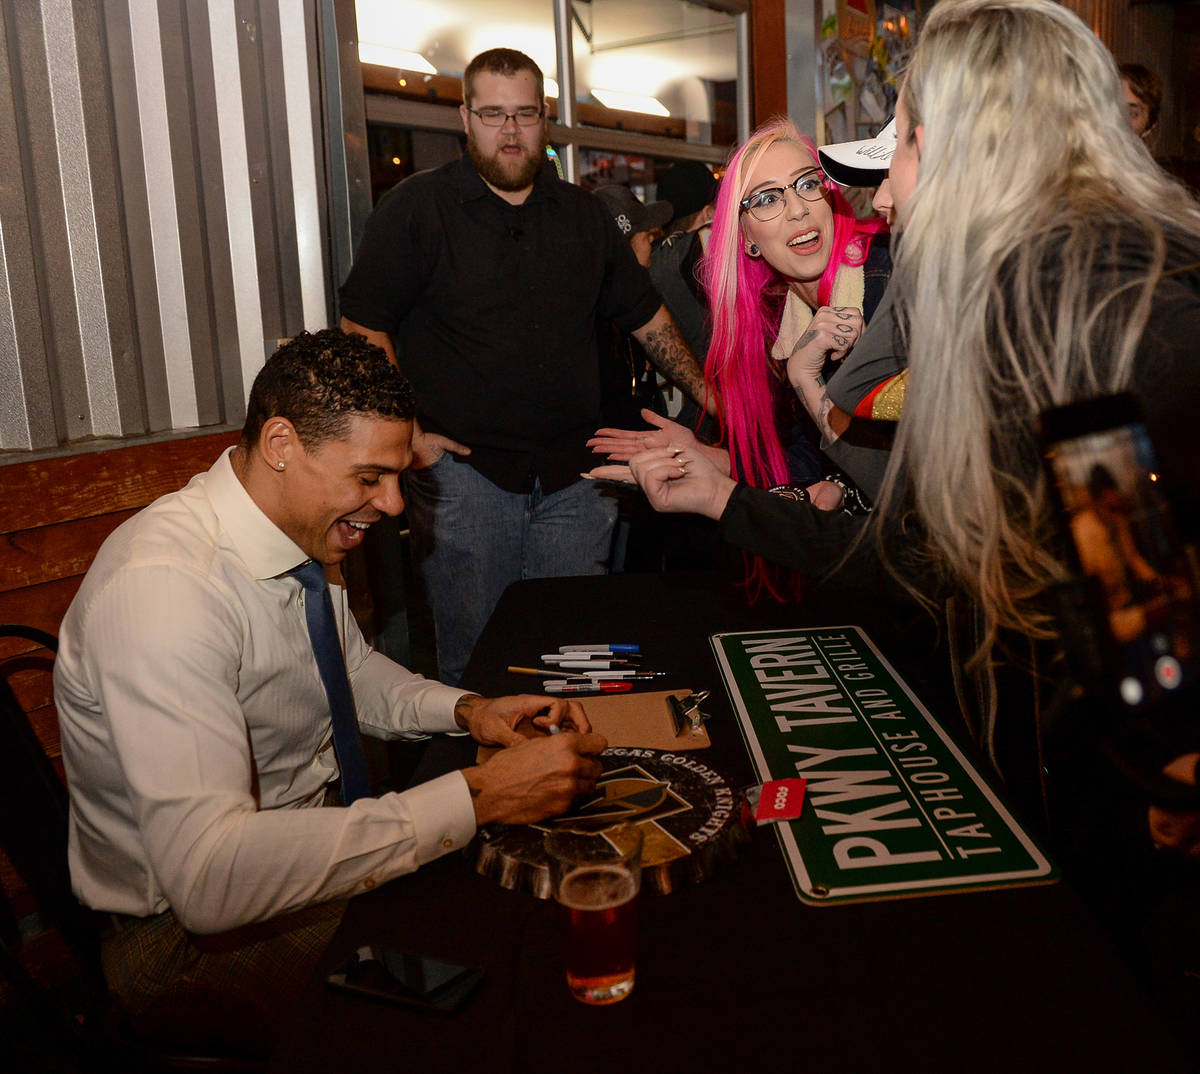 Vegas Golden Knights player Ryan Reaves signs memorabilia for fans at a party for the release o ...